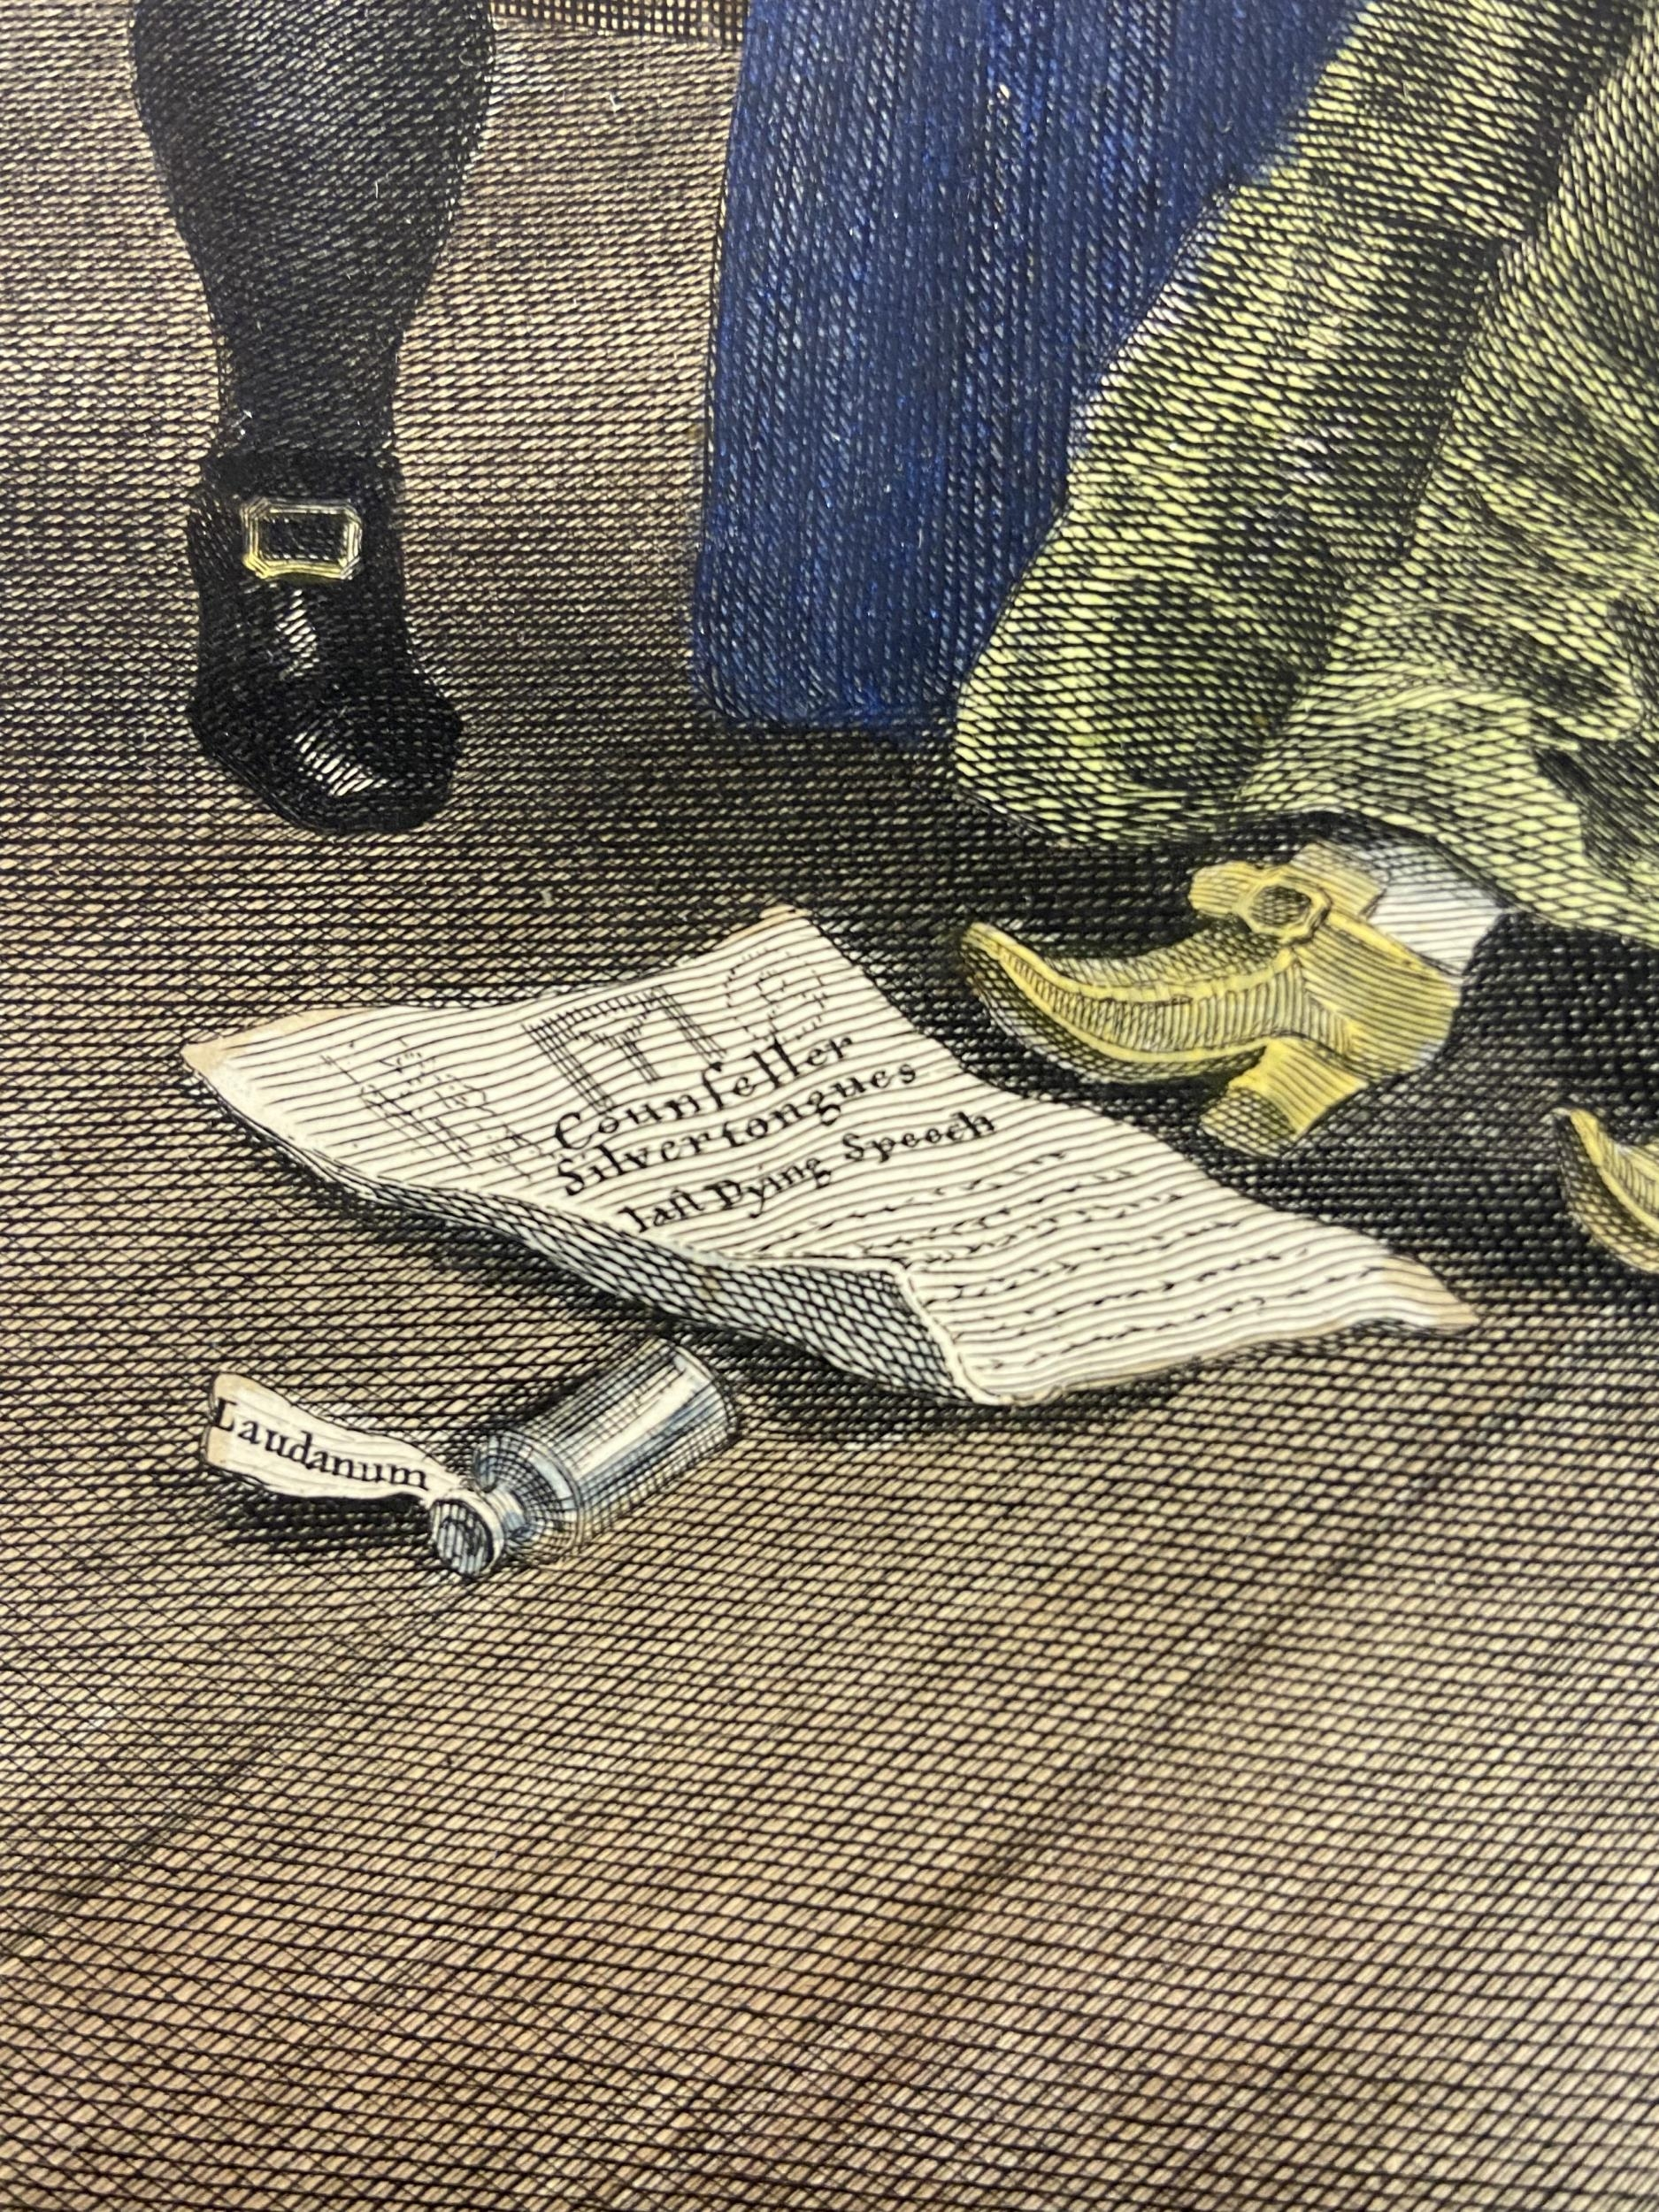 A Set of 6 18th century coloured engravings titled 'Marriage A- LA Mode' Painted, engraved and - Image 8 of 10